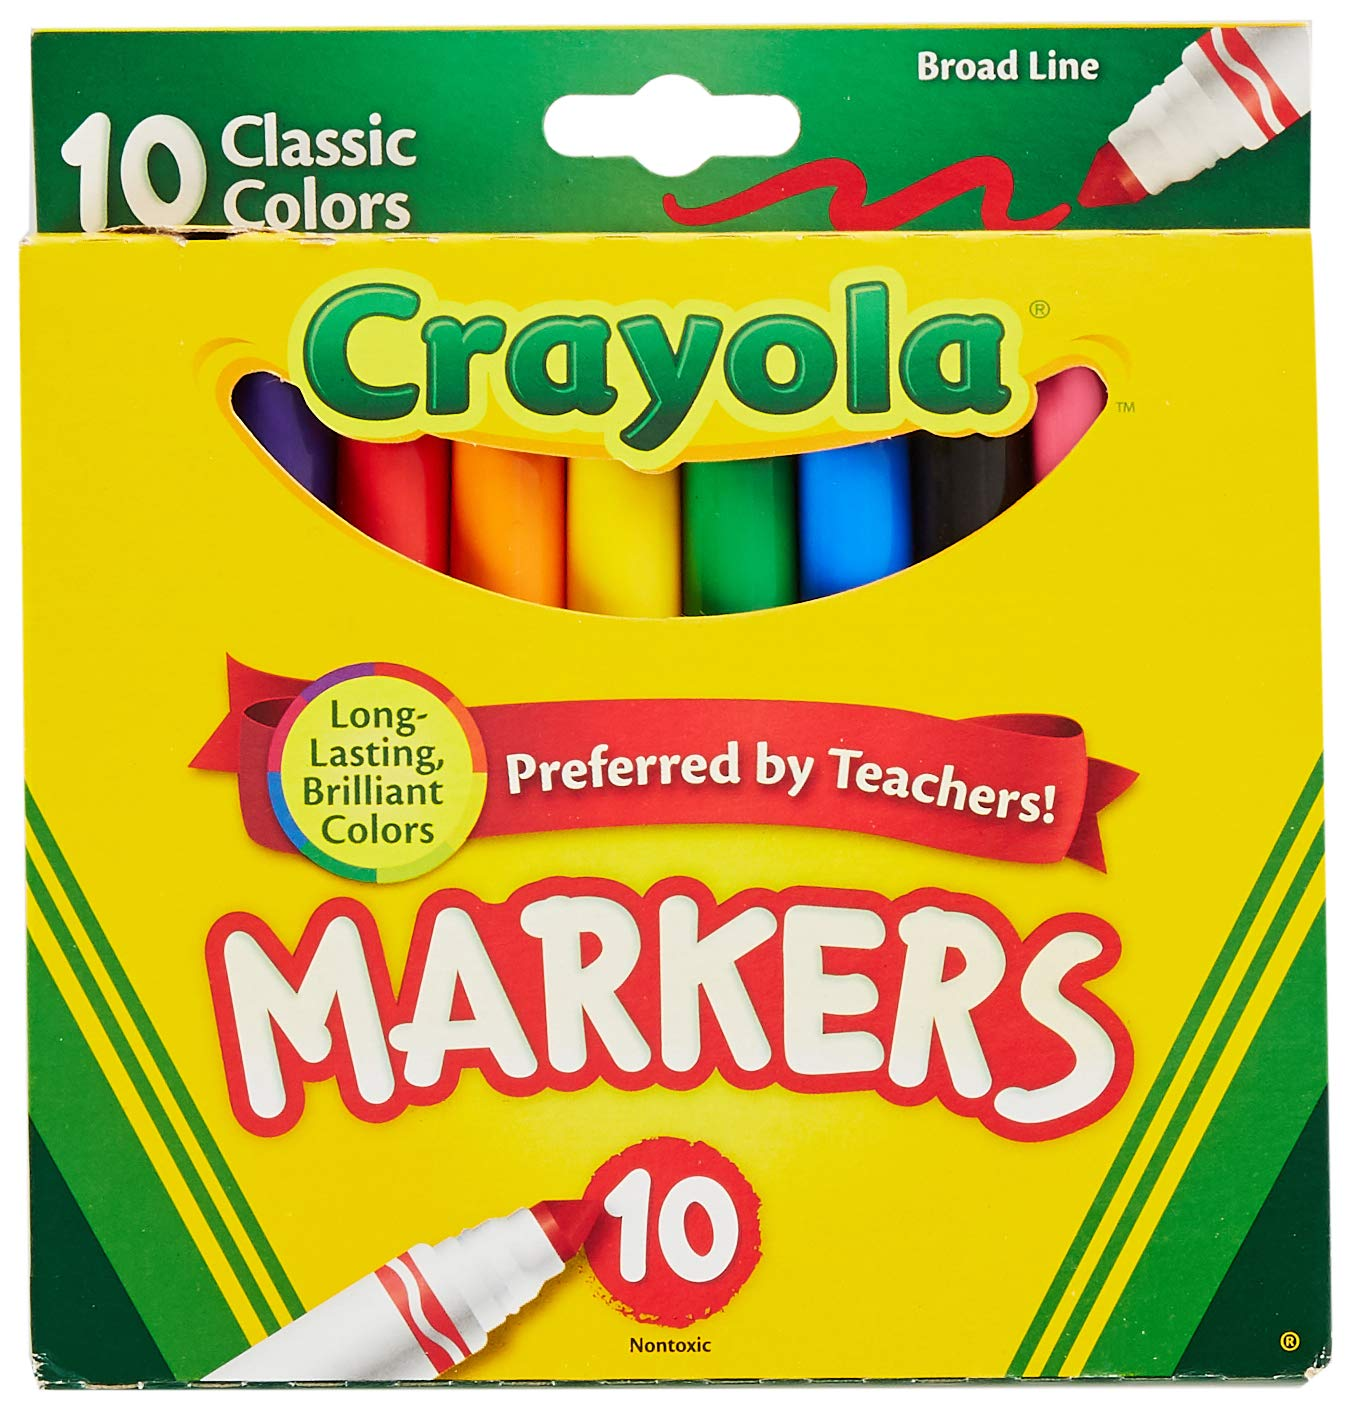 Crayola 758114552570 Broad Line Markers, Classic Colors 10 Each (Pack of 24), Case of 24, Count by Crayola